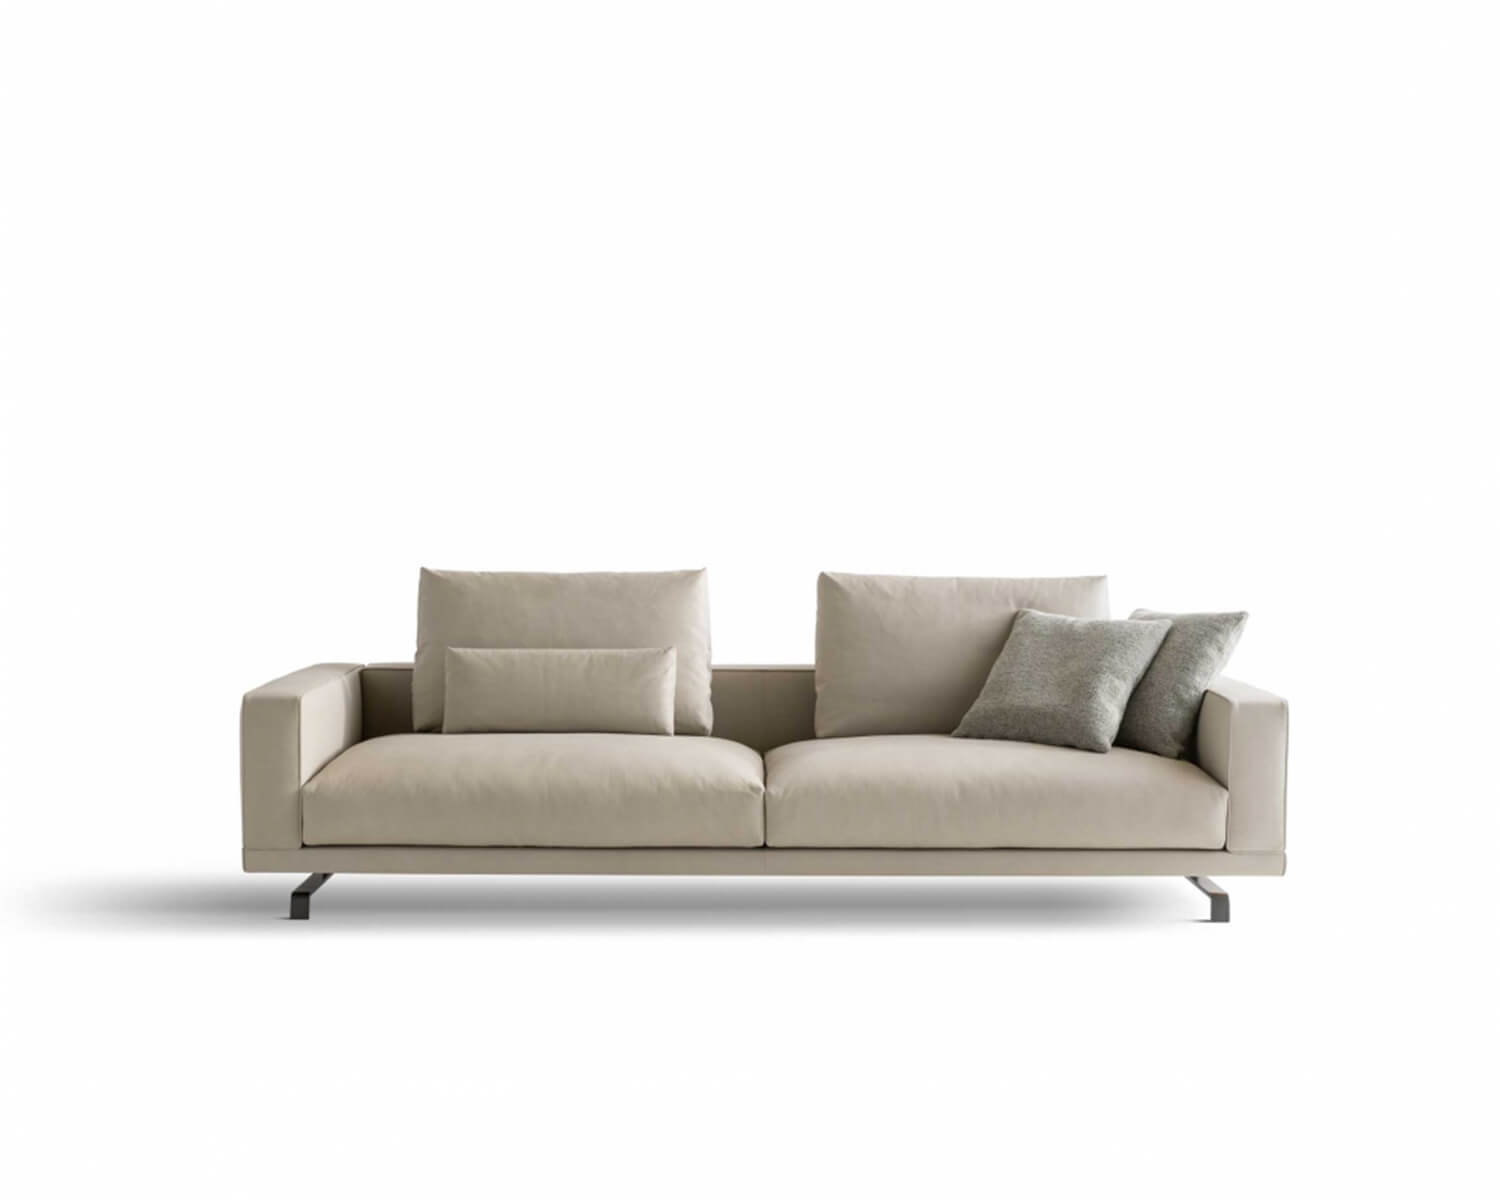 Beige Octave two-seater sofa with neutral coloured throw pillows on a white background